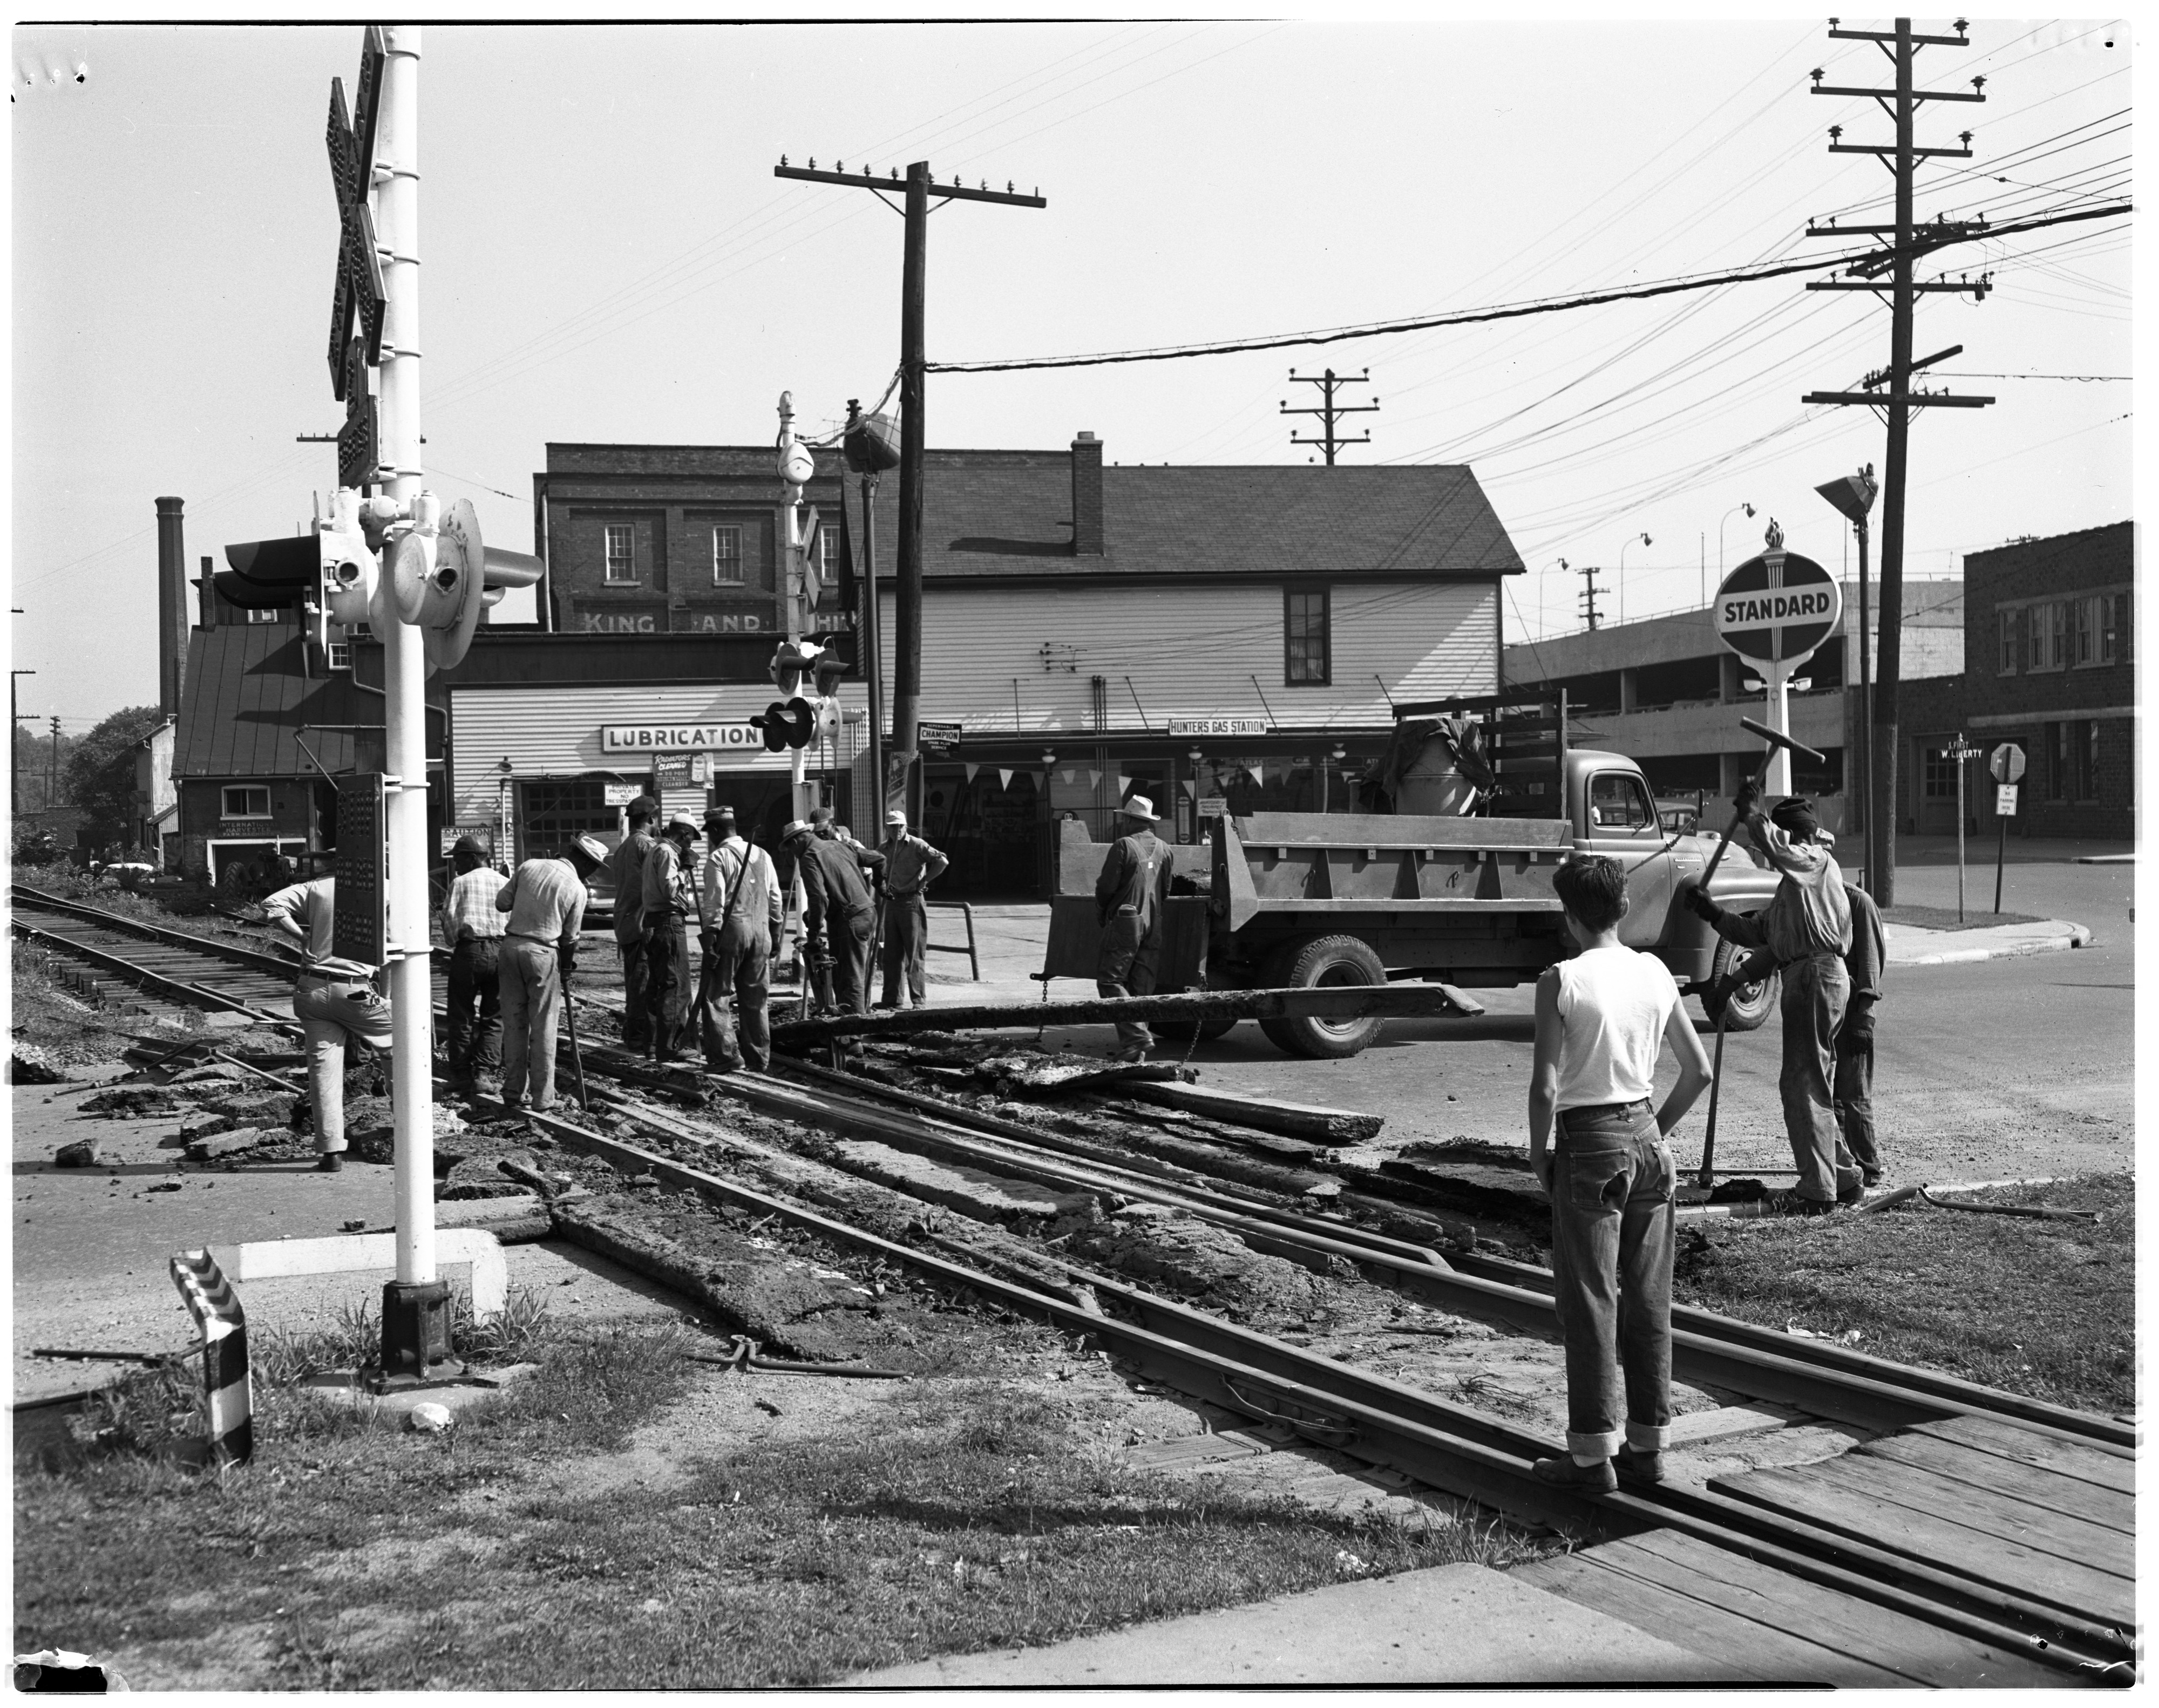 Ann Arbor Railroad Crossing Gets New Tracks, July 1953 image